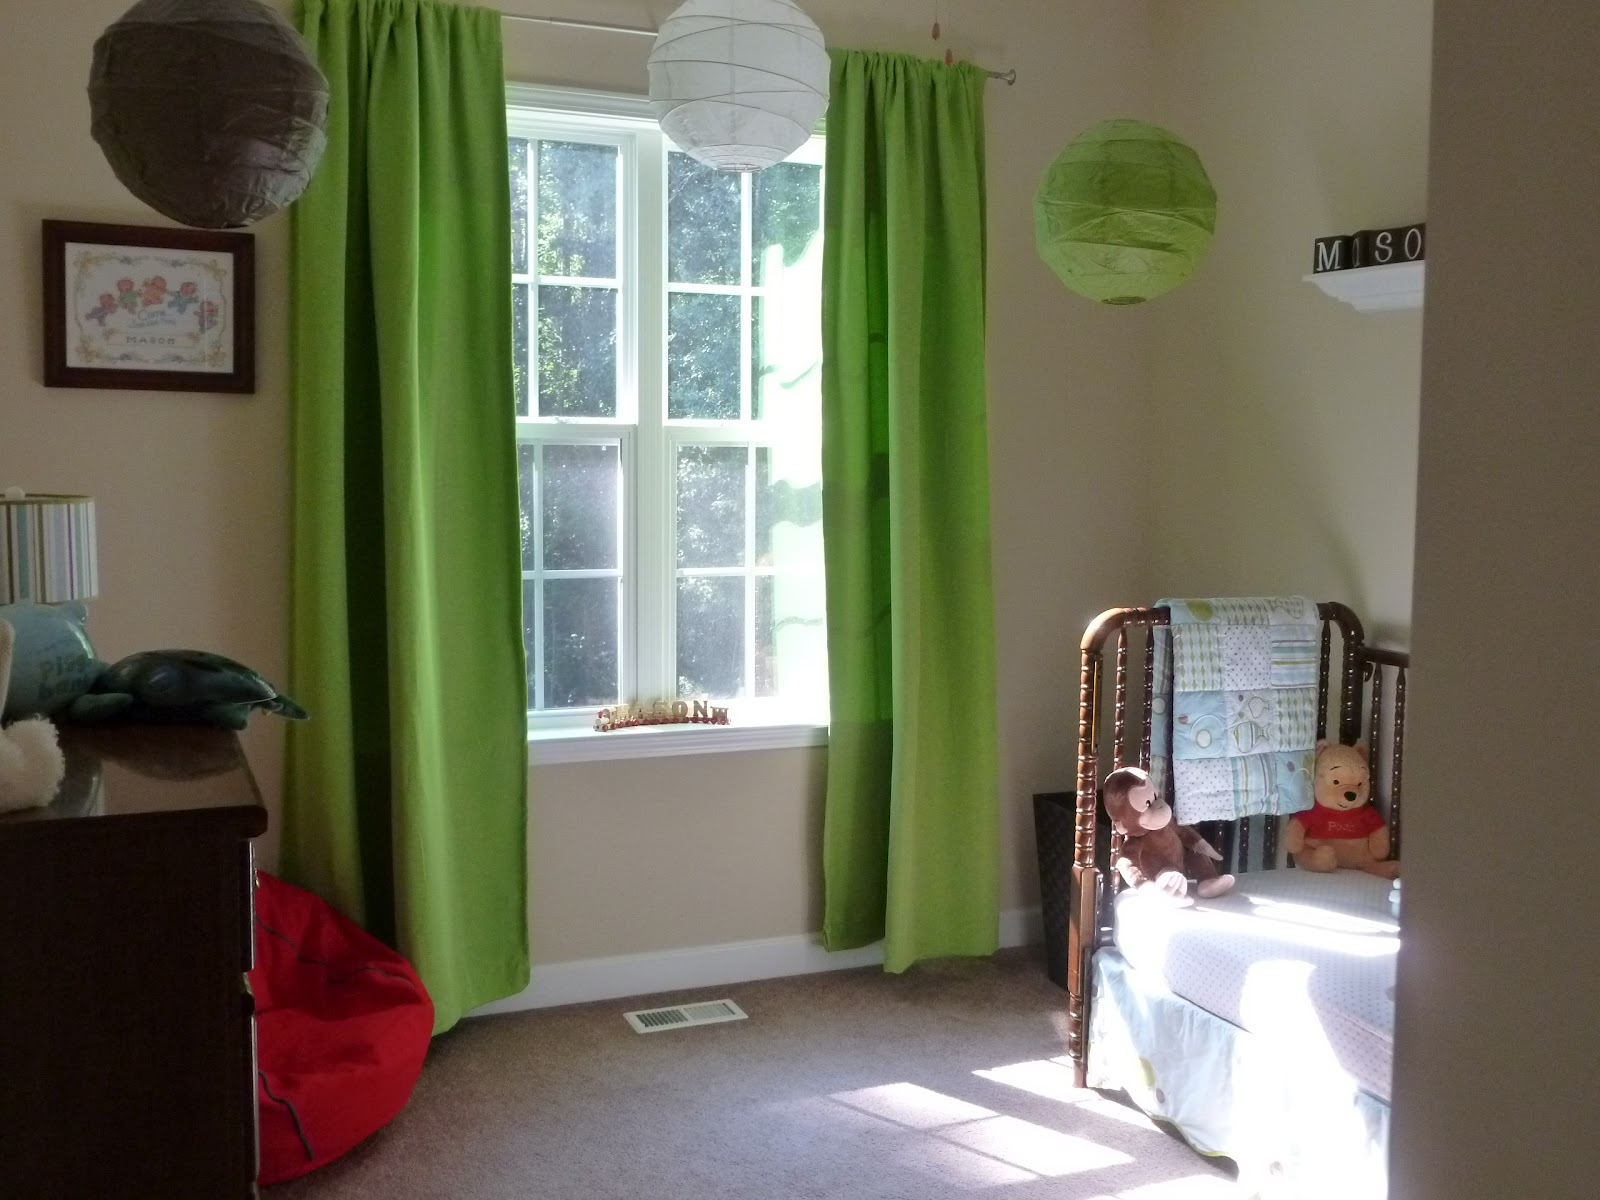 x-attractive-curtains-for-small-windows-next-to-doors-curtains-for-small-windows-in-the-kitchen-curtains-for-small-windows-bathroom-curtains-for-small-windows-curtains-for-small-windows-in-the-ki